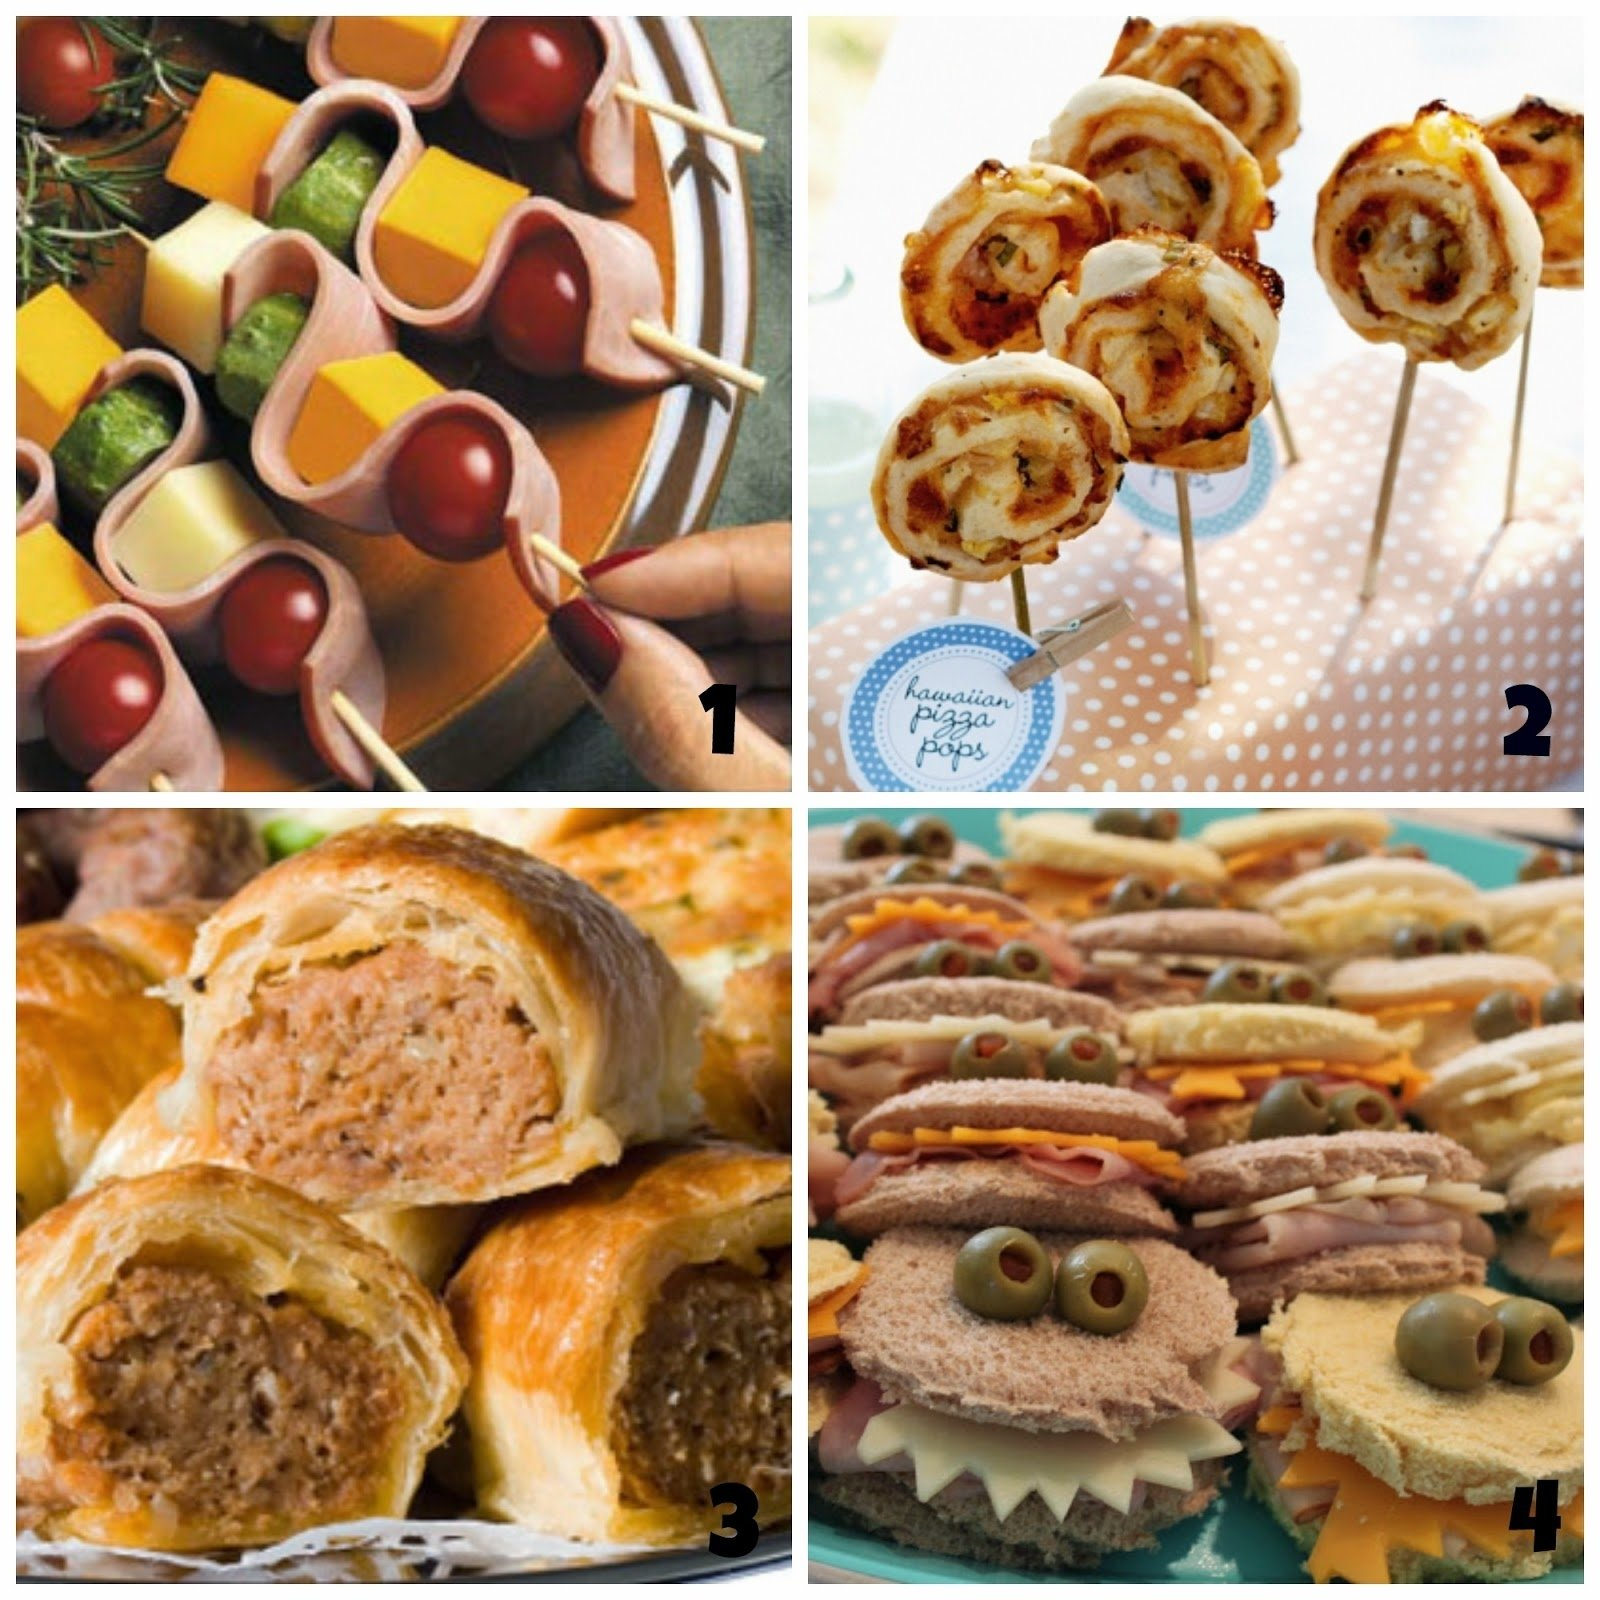 10 Fashionable Party Foods Ideas For Adults whats on 4 kids parties 12 awesome party food ideas 1 2020